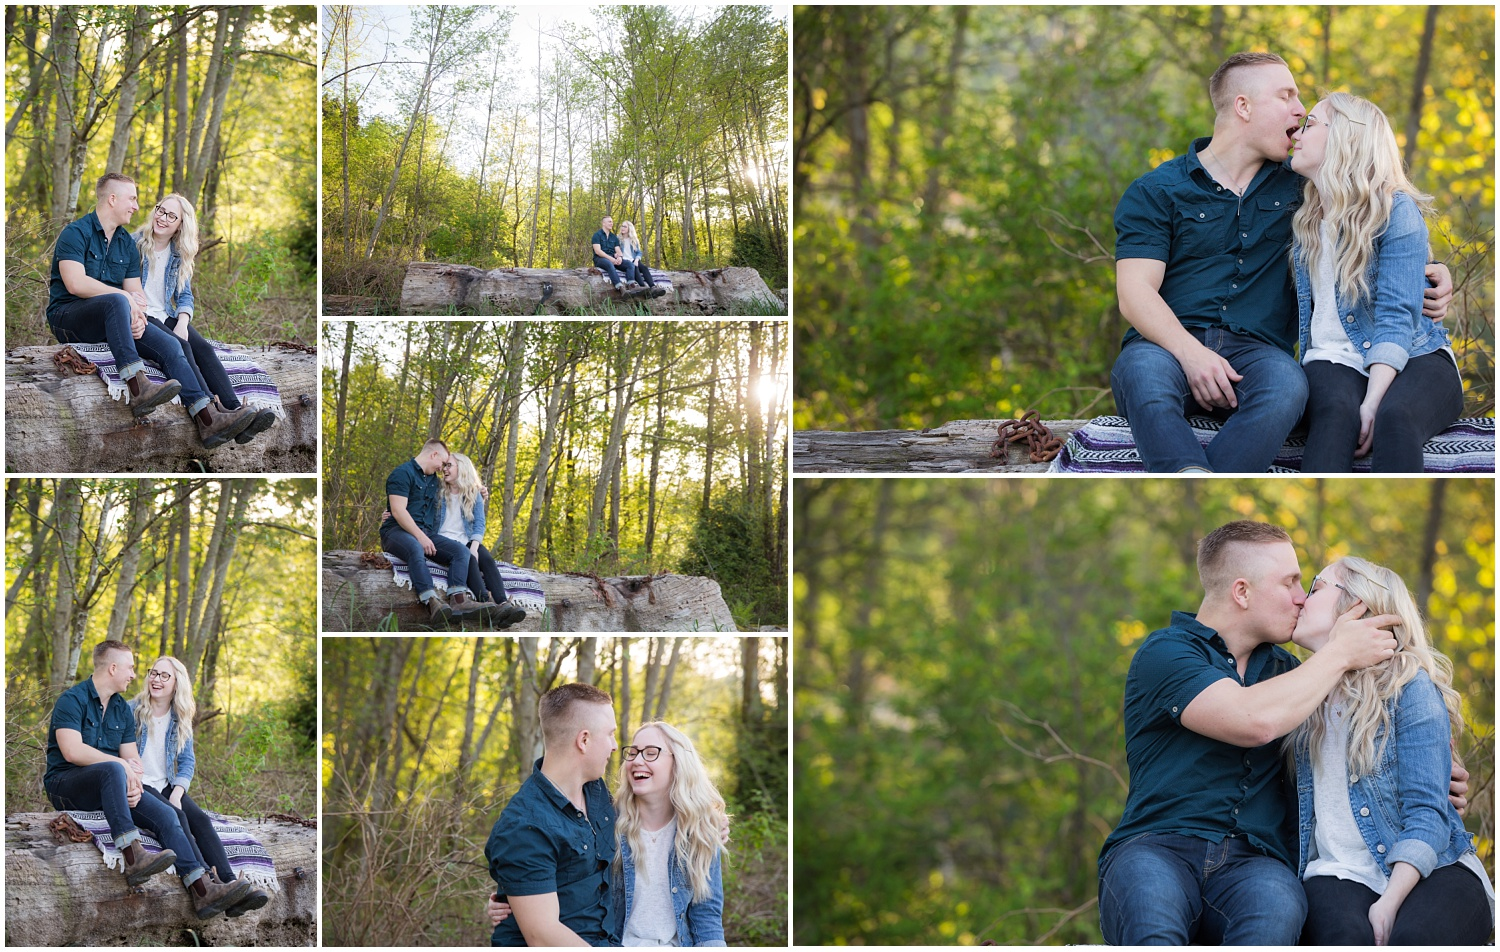 Amazing Day Photography - Barnet Marine Park Engagement Session - Burnaby Engagement Photographer - Langley Engagement Photographer (1).jpg